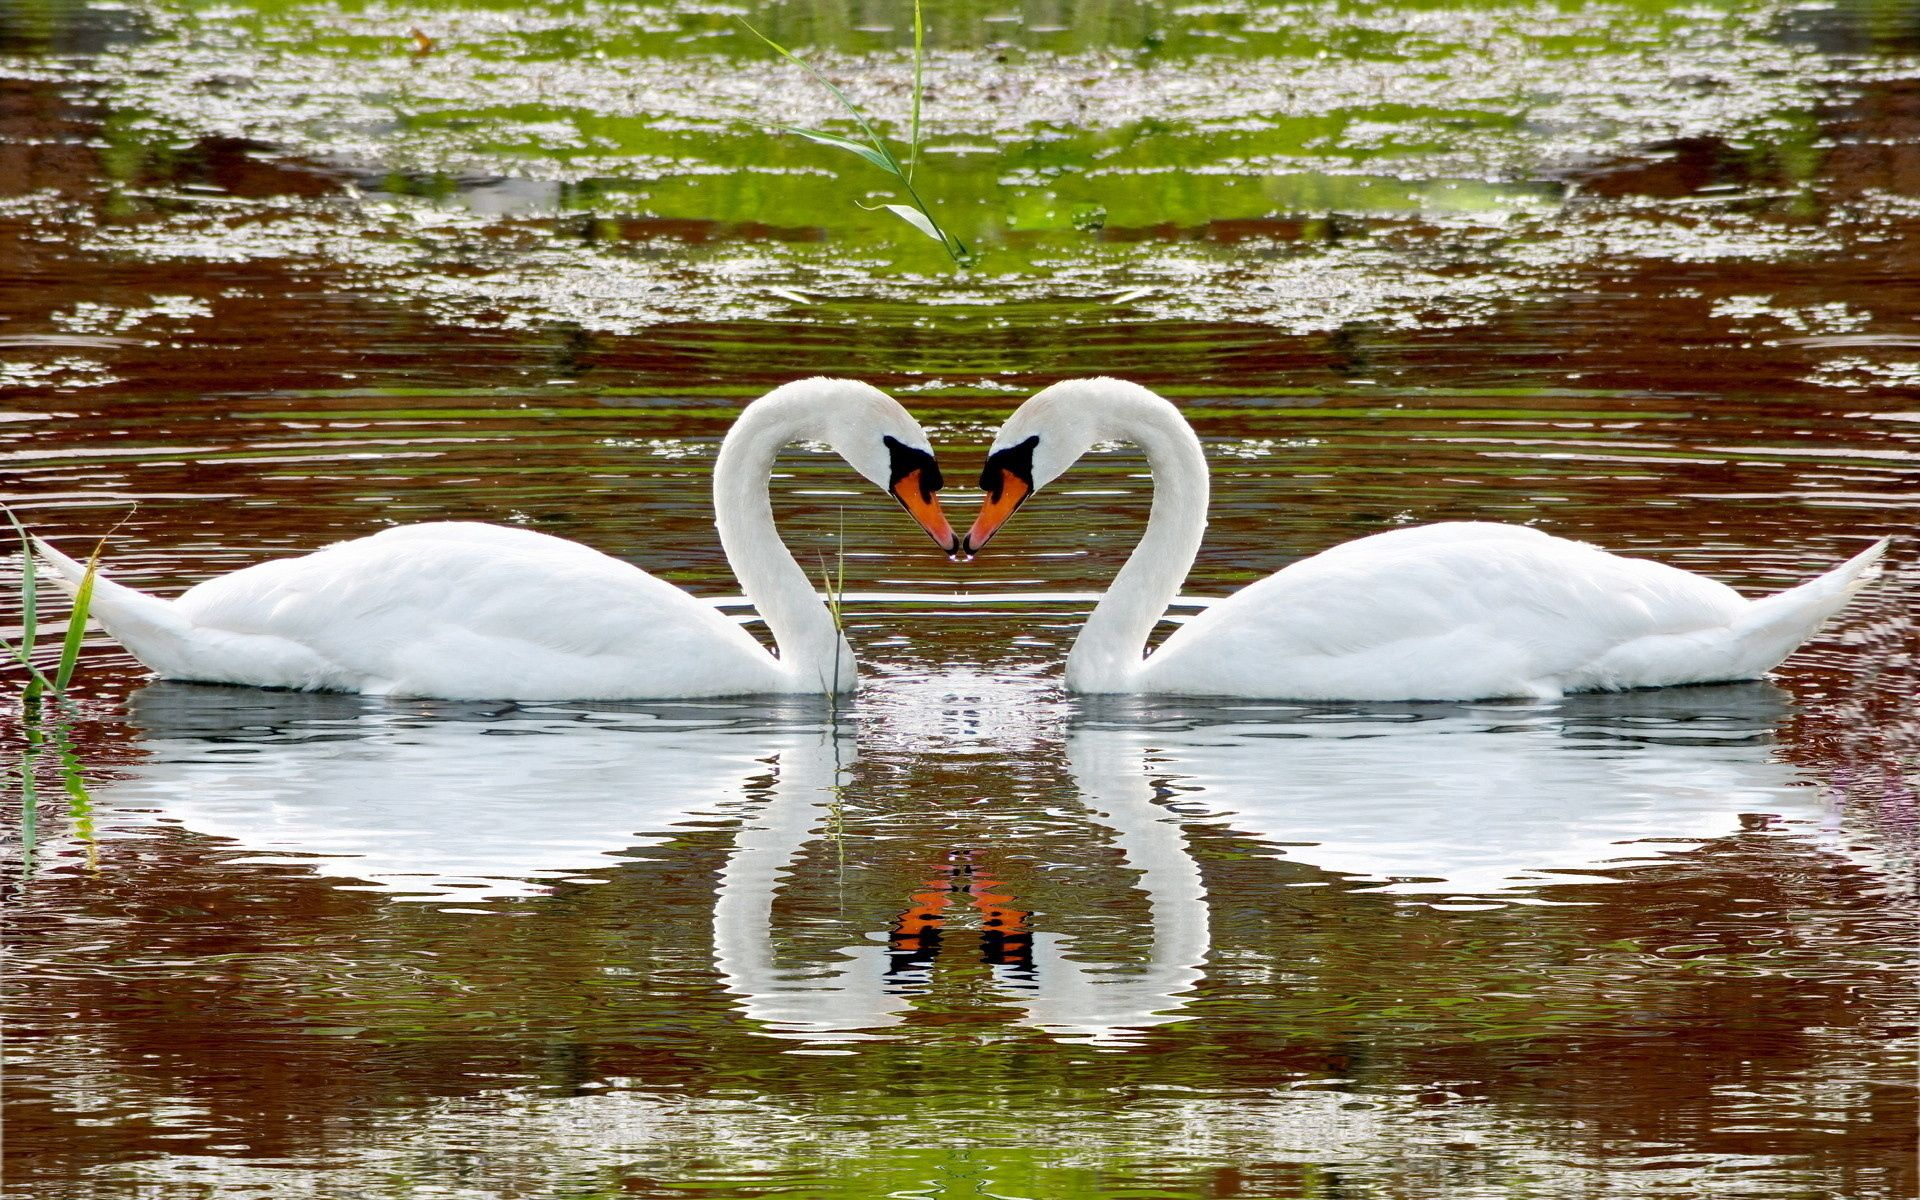 156022 download wallpaper Animals, Swans, Lake, To Swim, Swim, Couple, Pair, Fidelity, Reflection, Heart screensavers and pictures for free